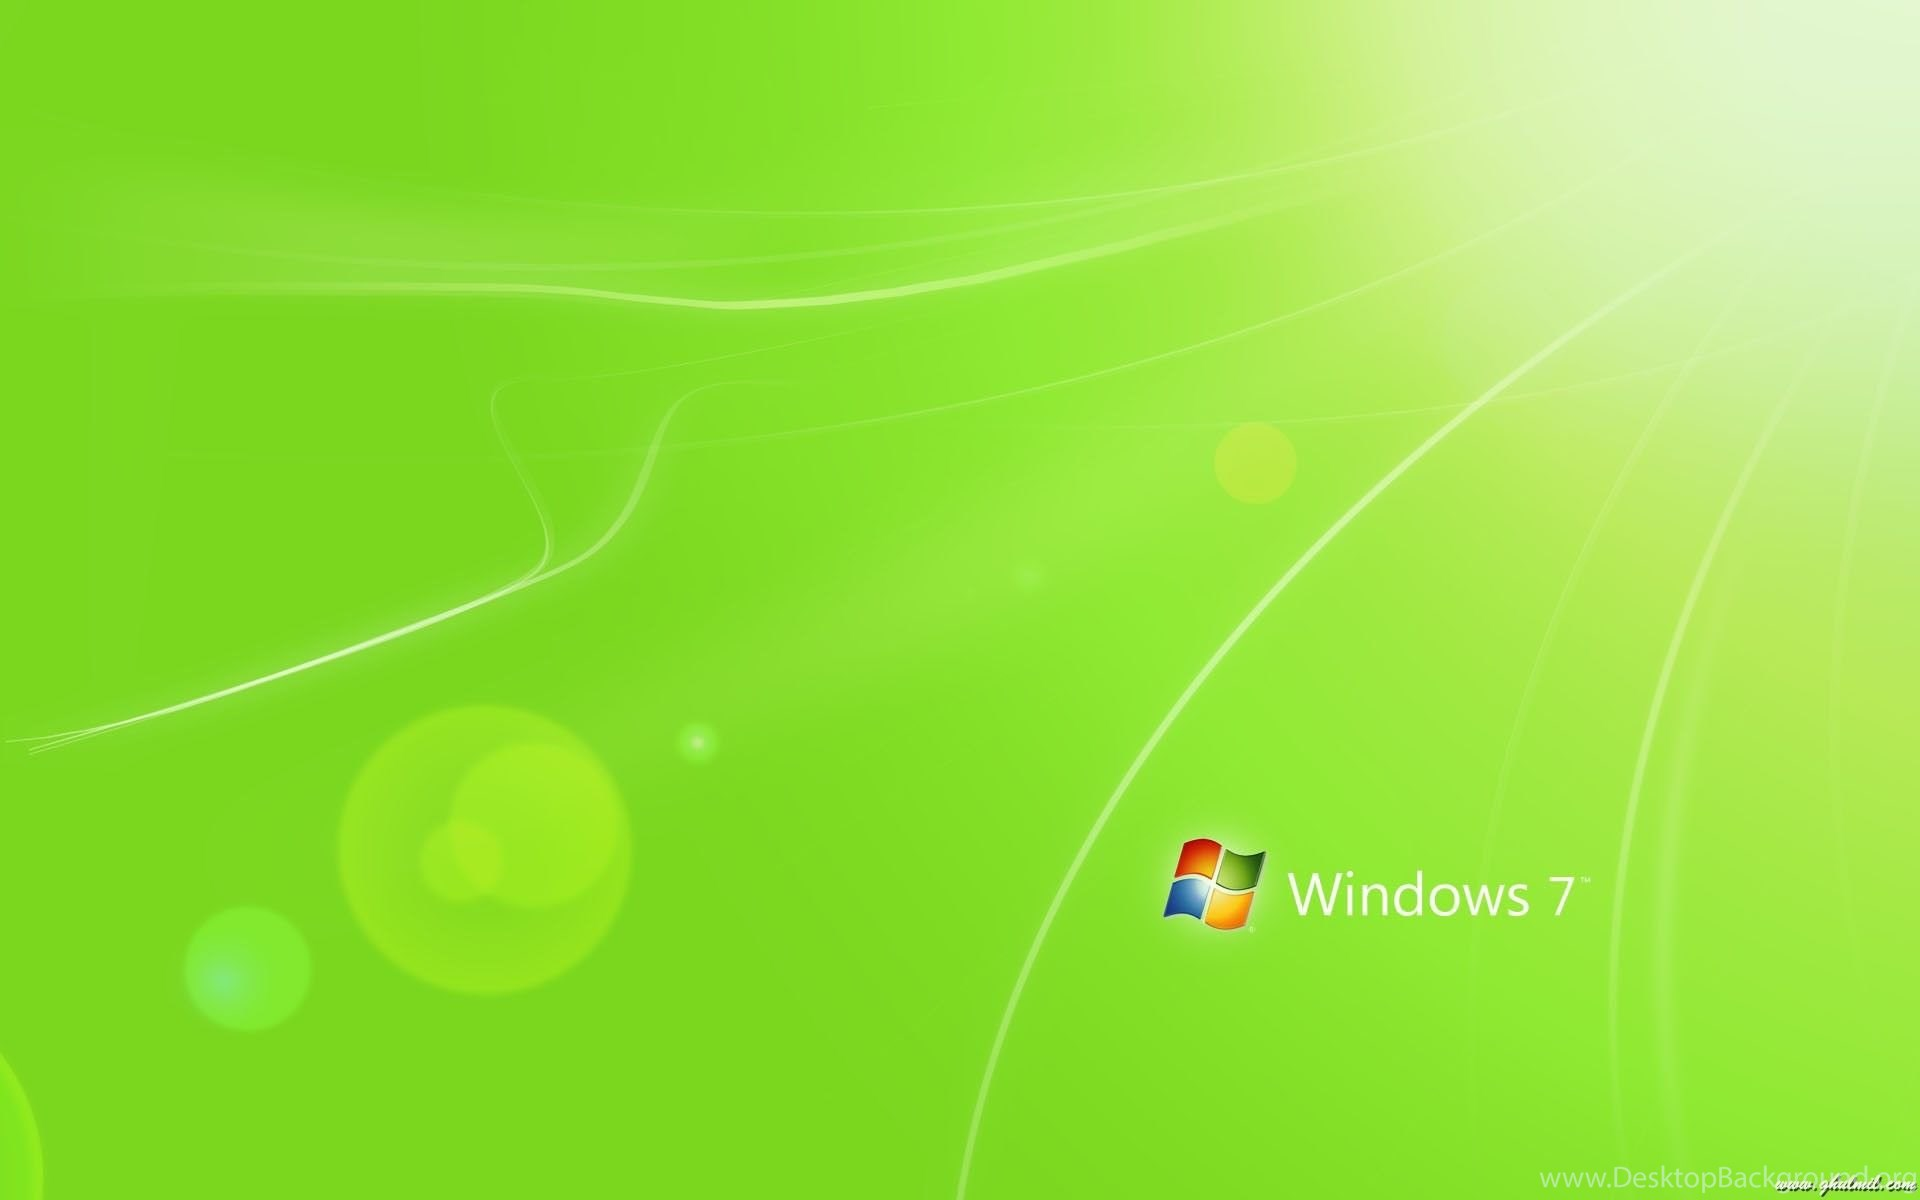 multicolor windows 7 latest wallpapers – hd wallpapers free download